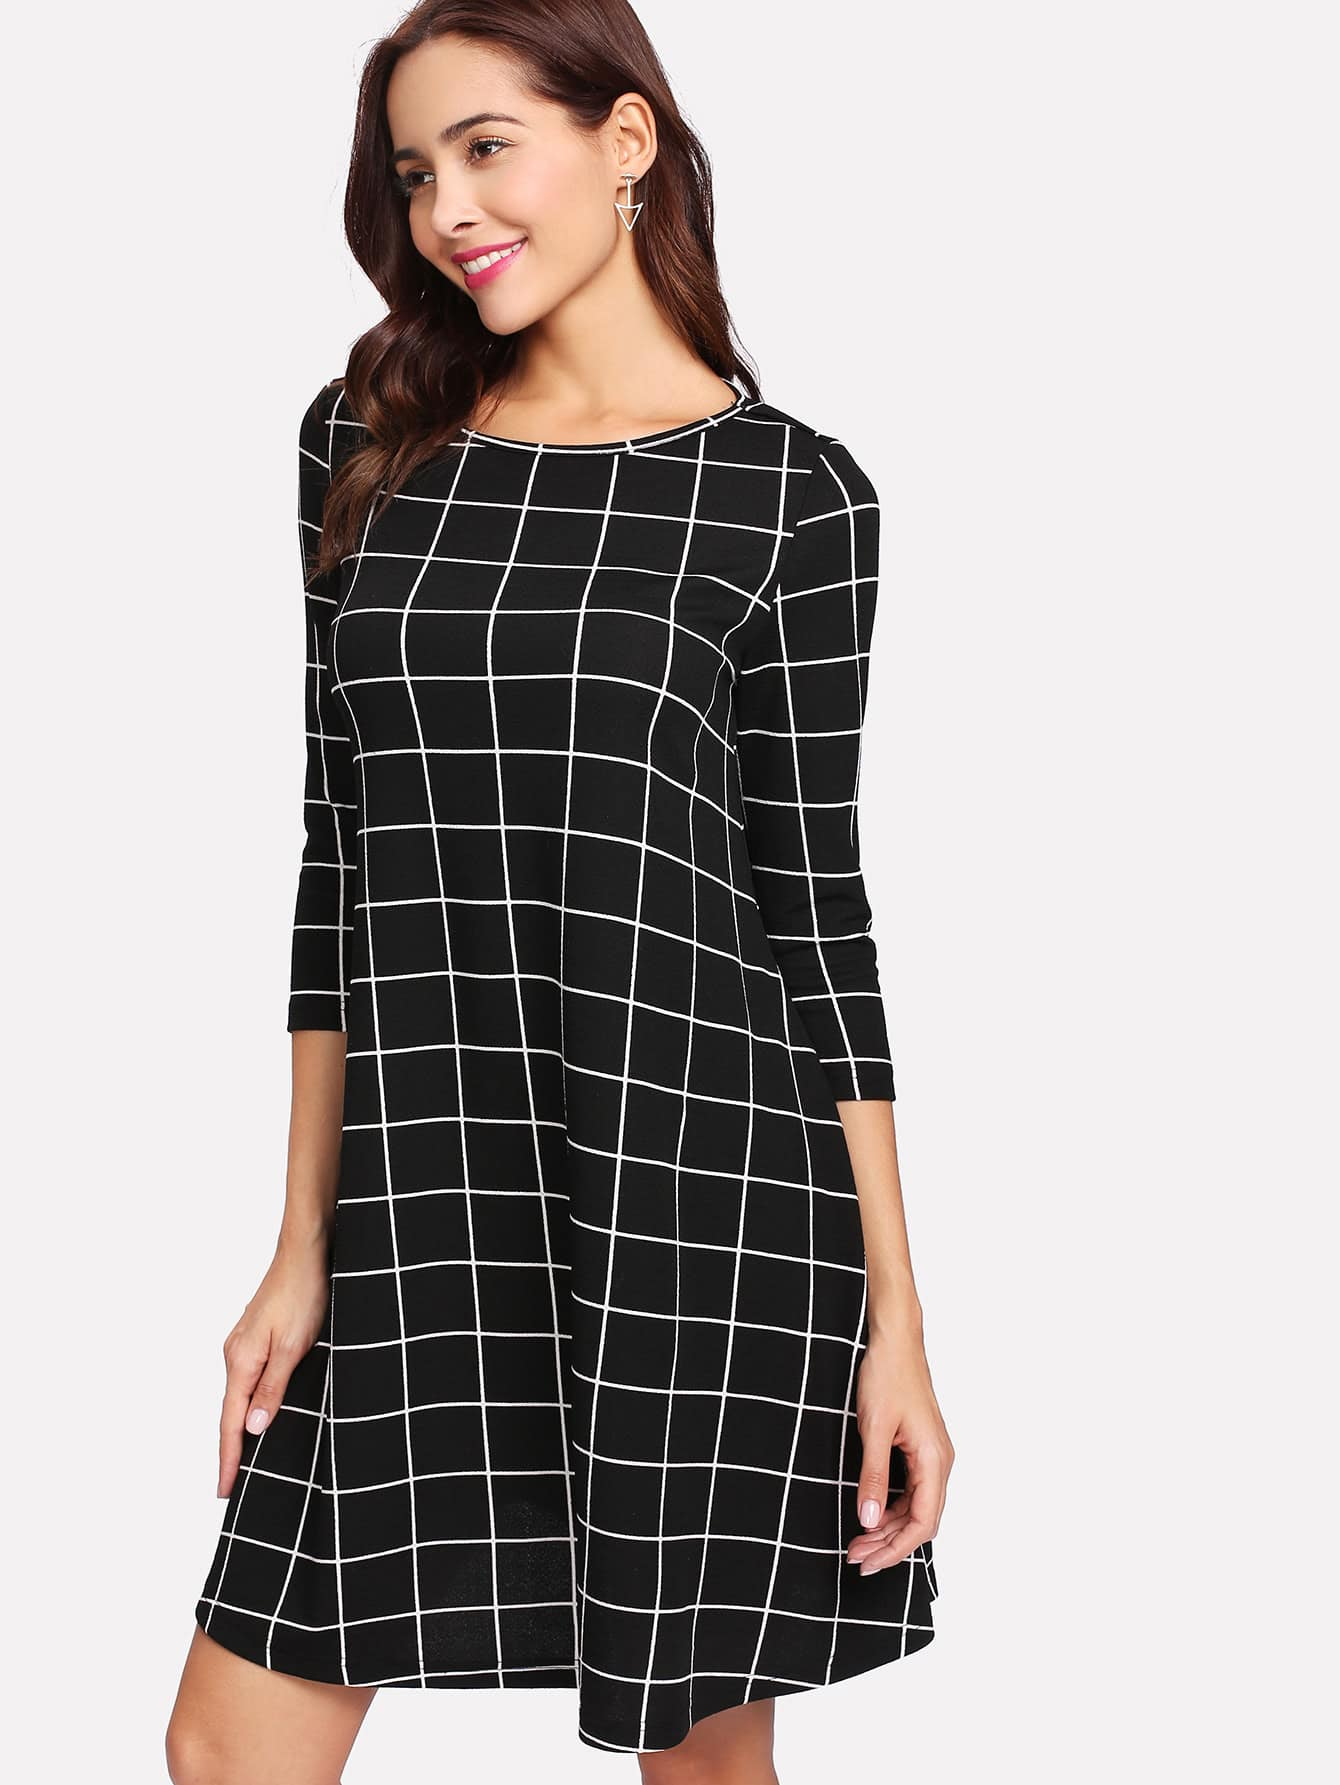 3/4 Sleeve Grid Flowy Dress